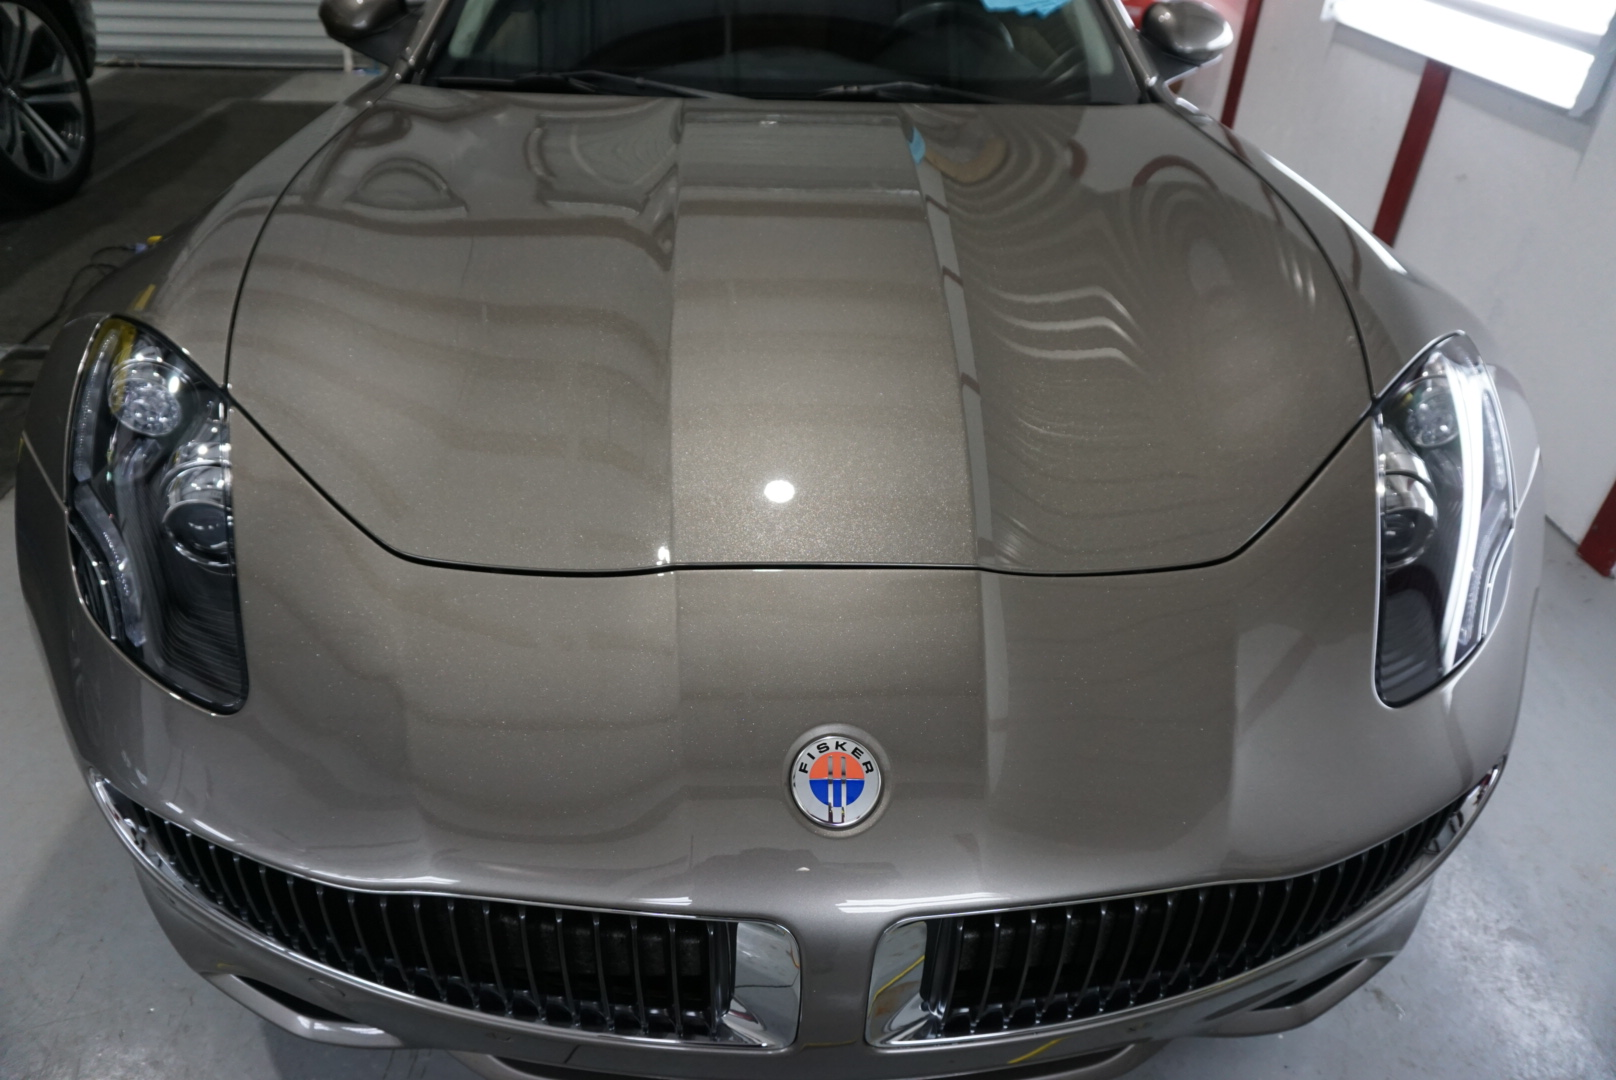 2016 Fisker Karma with new Ceramic Coating